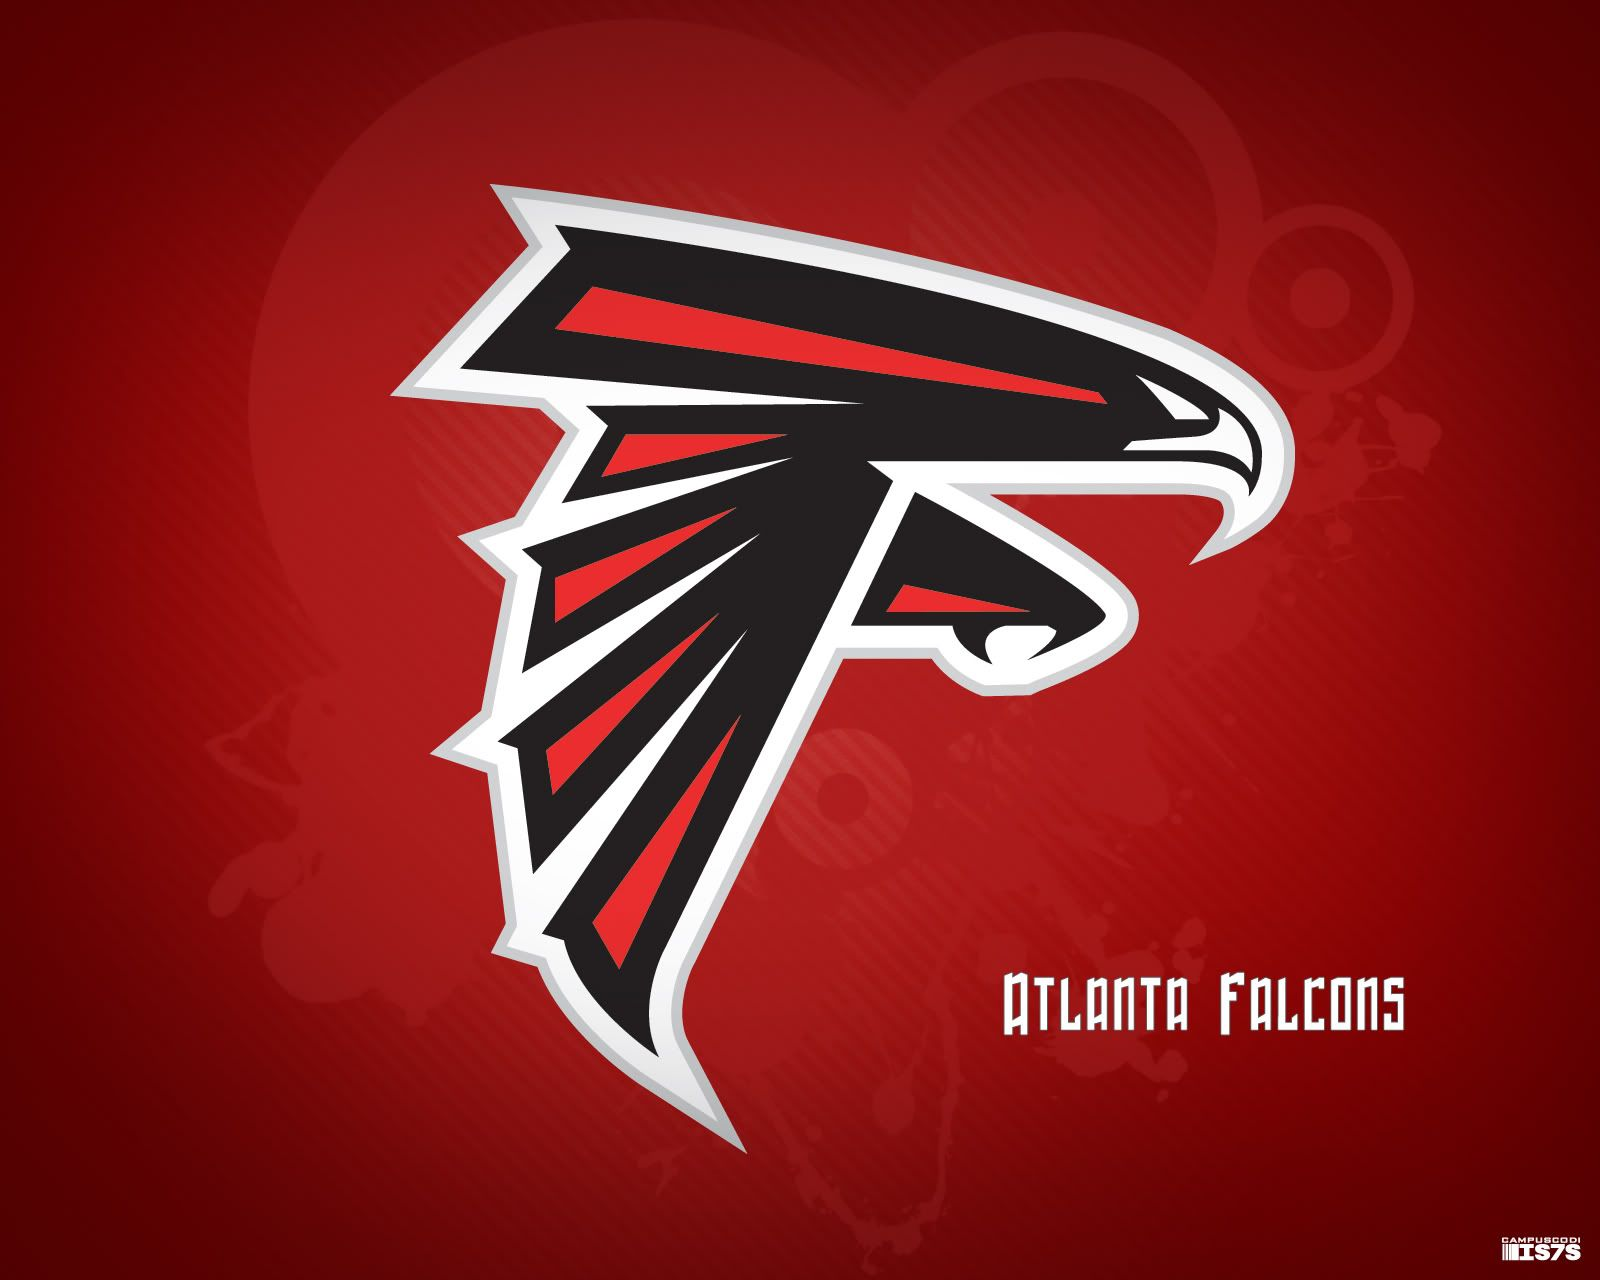 Atlanta Falcons Logo Wallpaper Invitation Templates Atlanta Falcons Background Atlanta Falcons Logo Atlanta Falcons